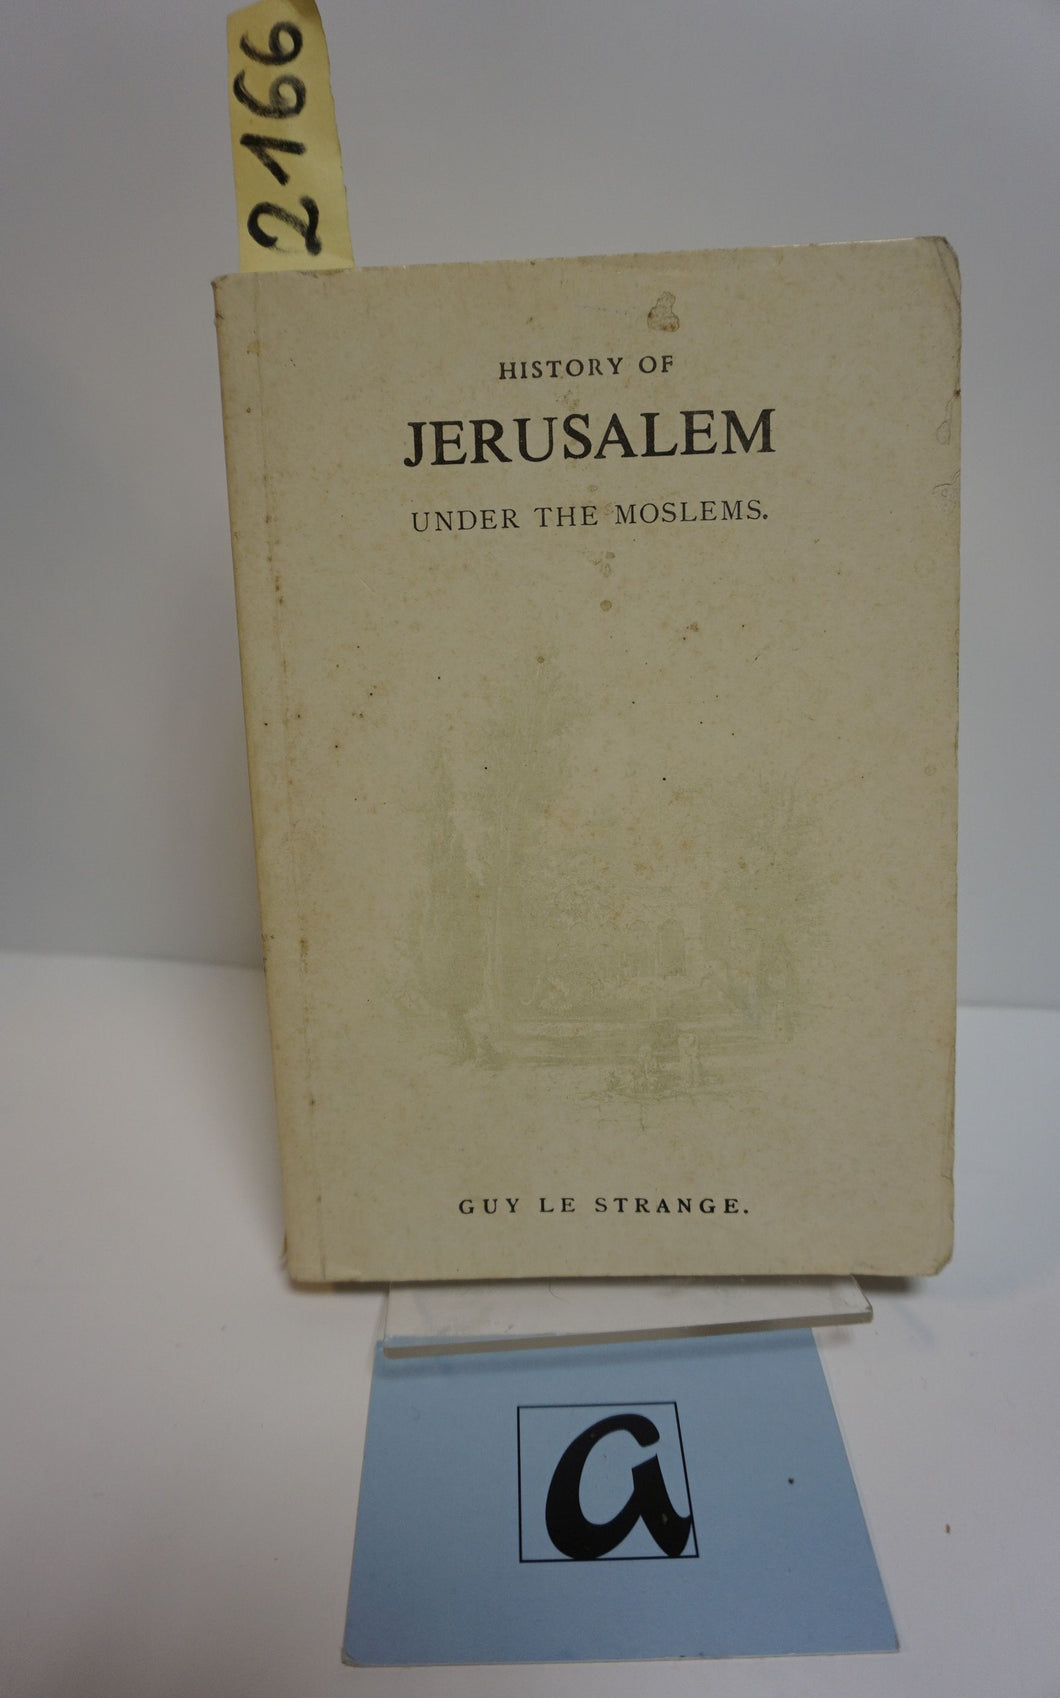 Jerusalem under the Moslems